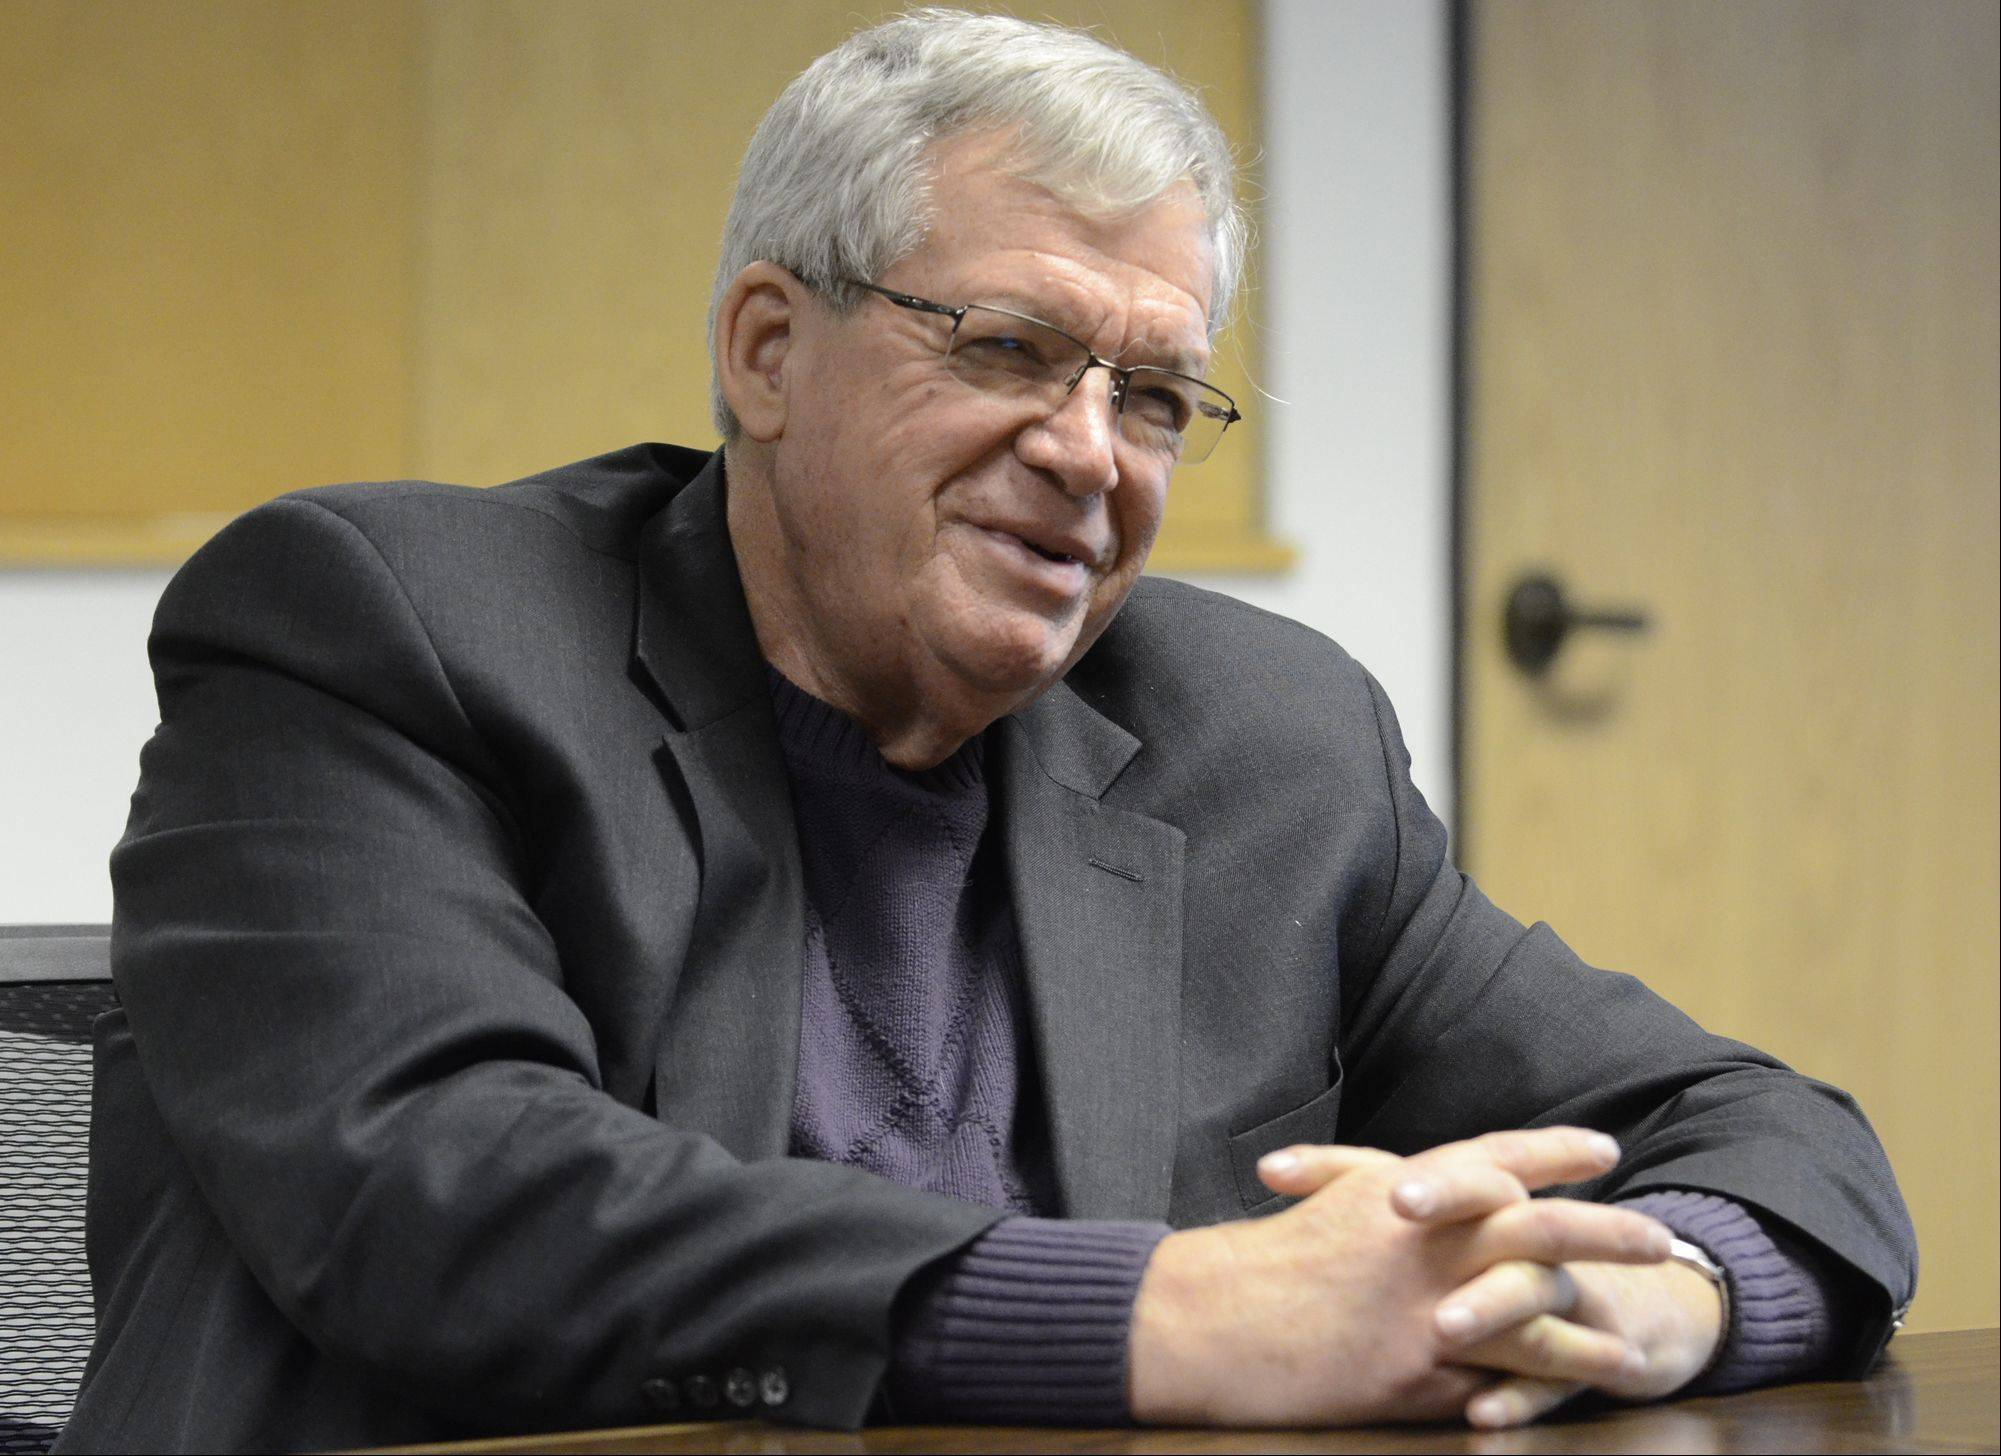 Hastert: 'You get things done by finding compromise'